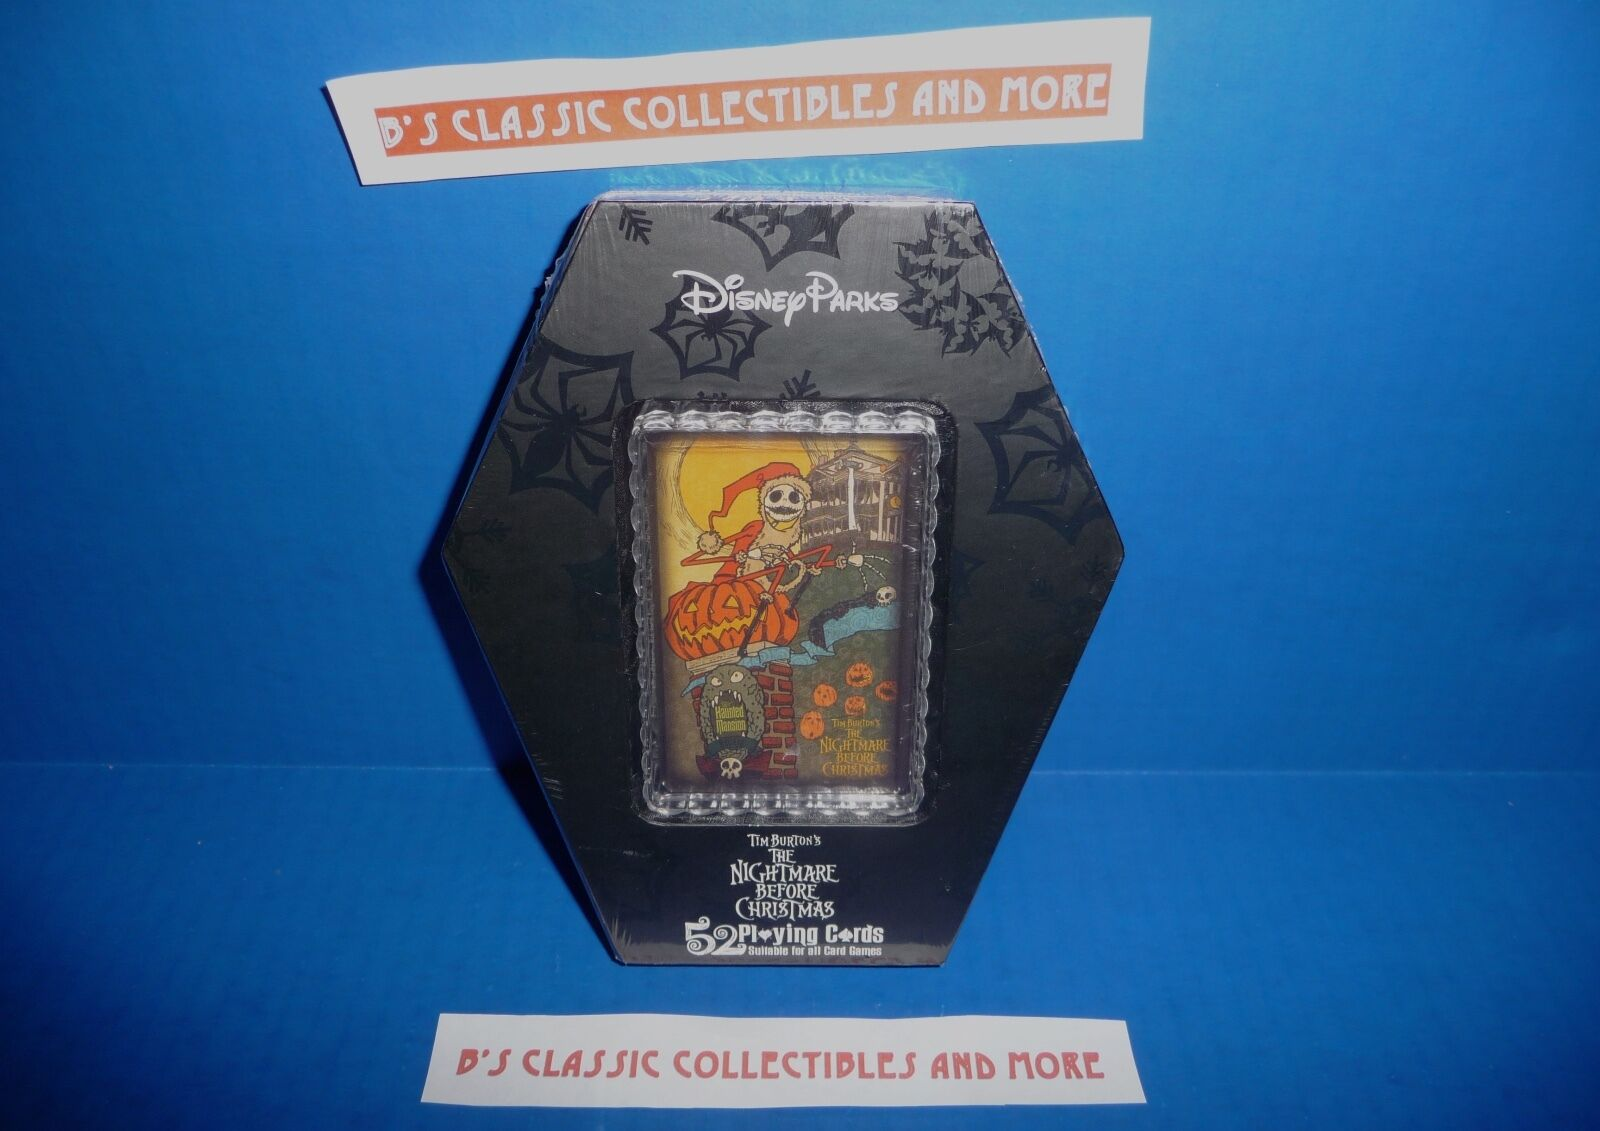 DISNEY PARKS NIGHTMARE Before Christmas Playing Card Set - Coffin ...